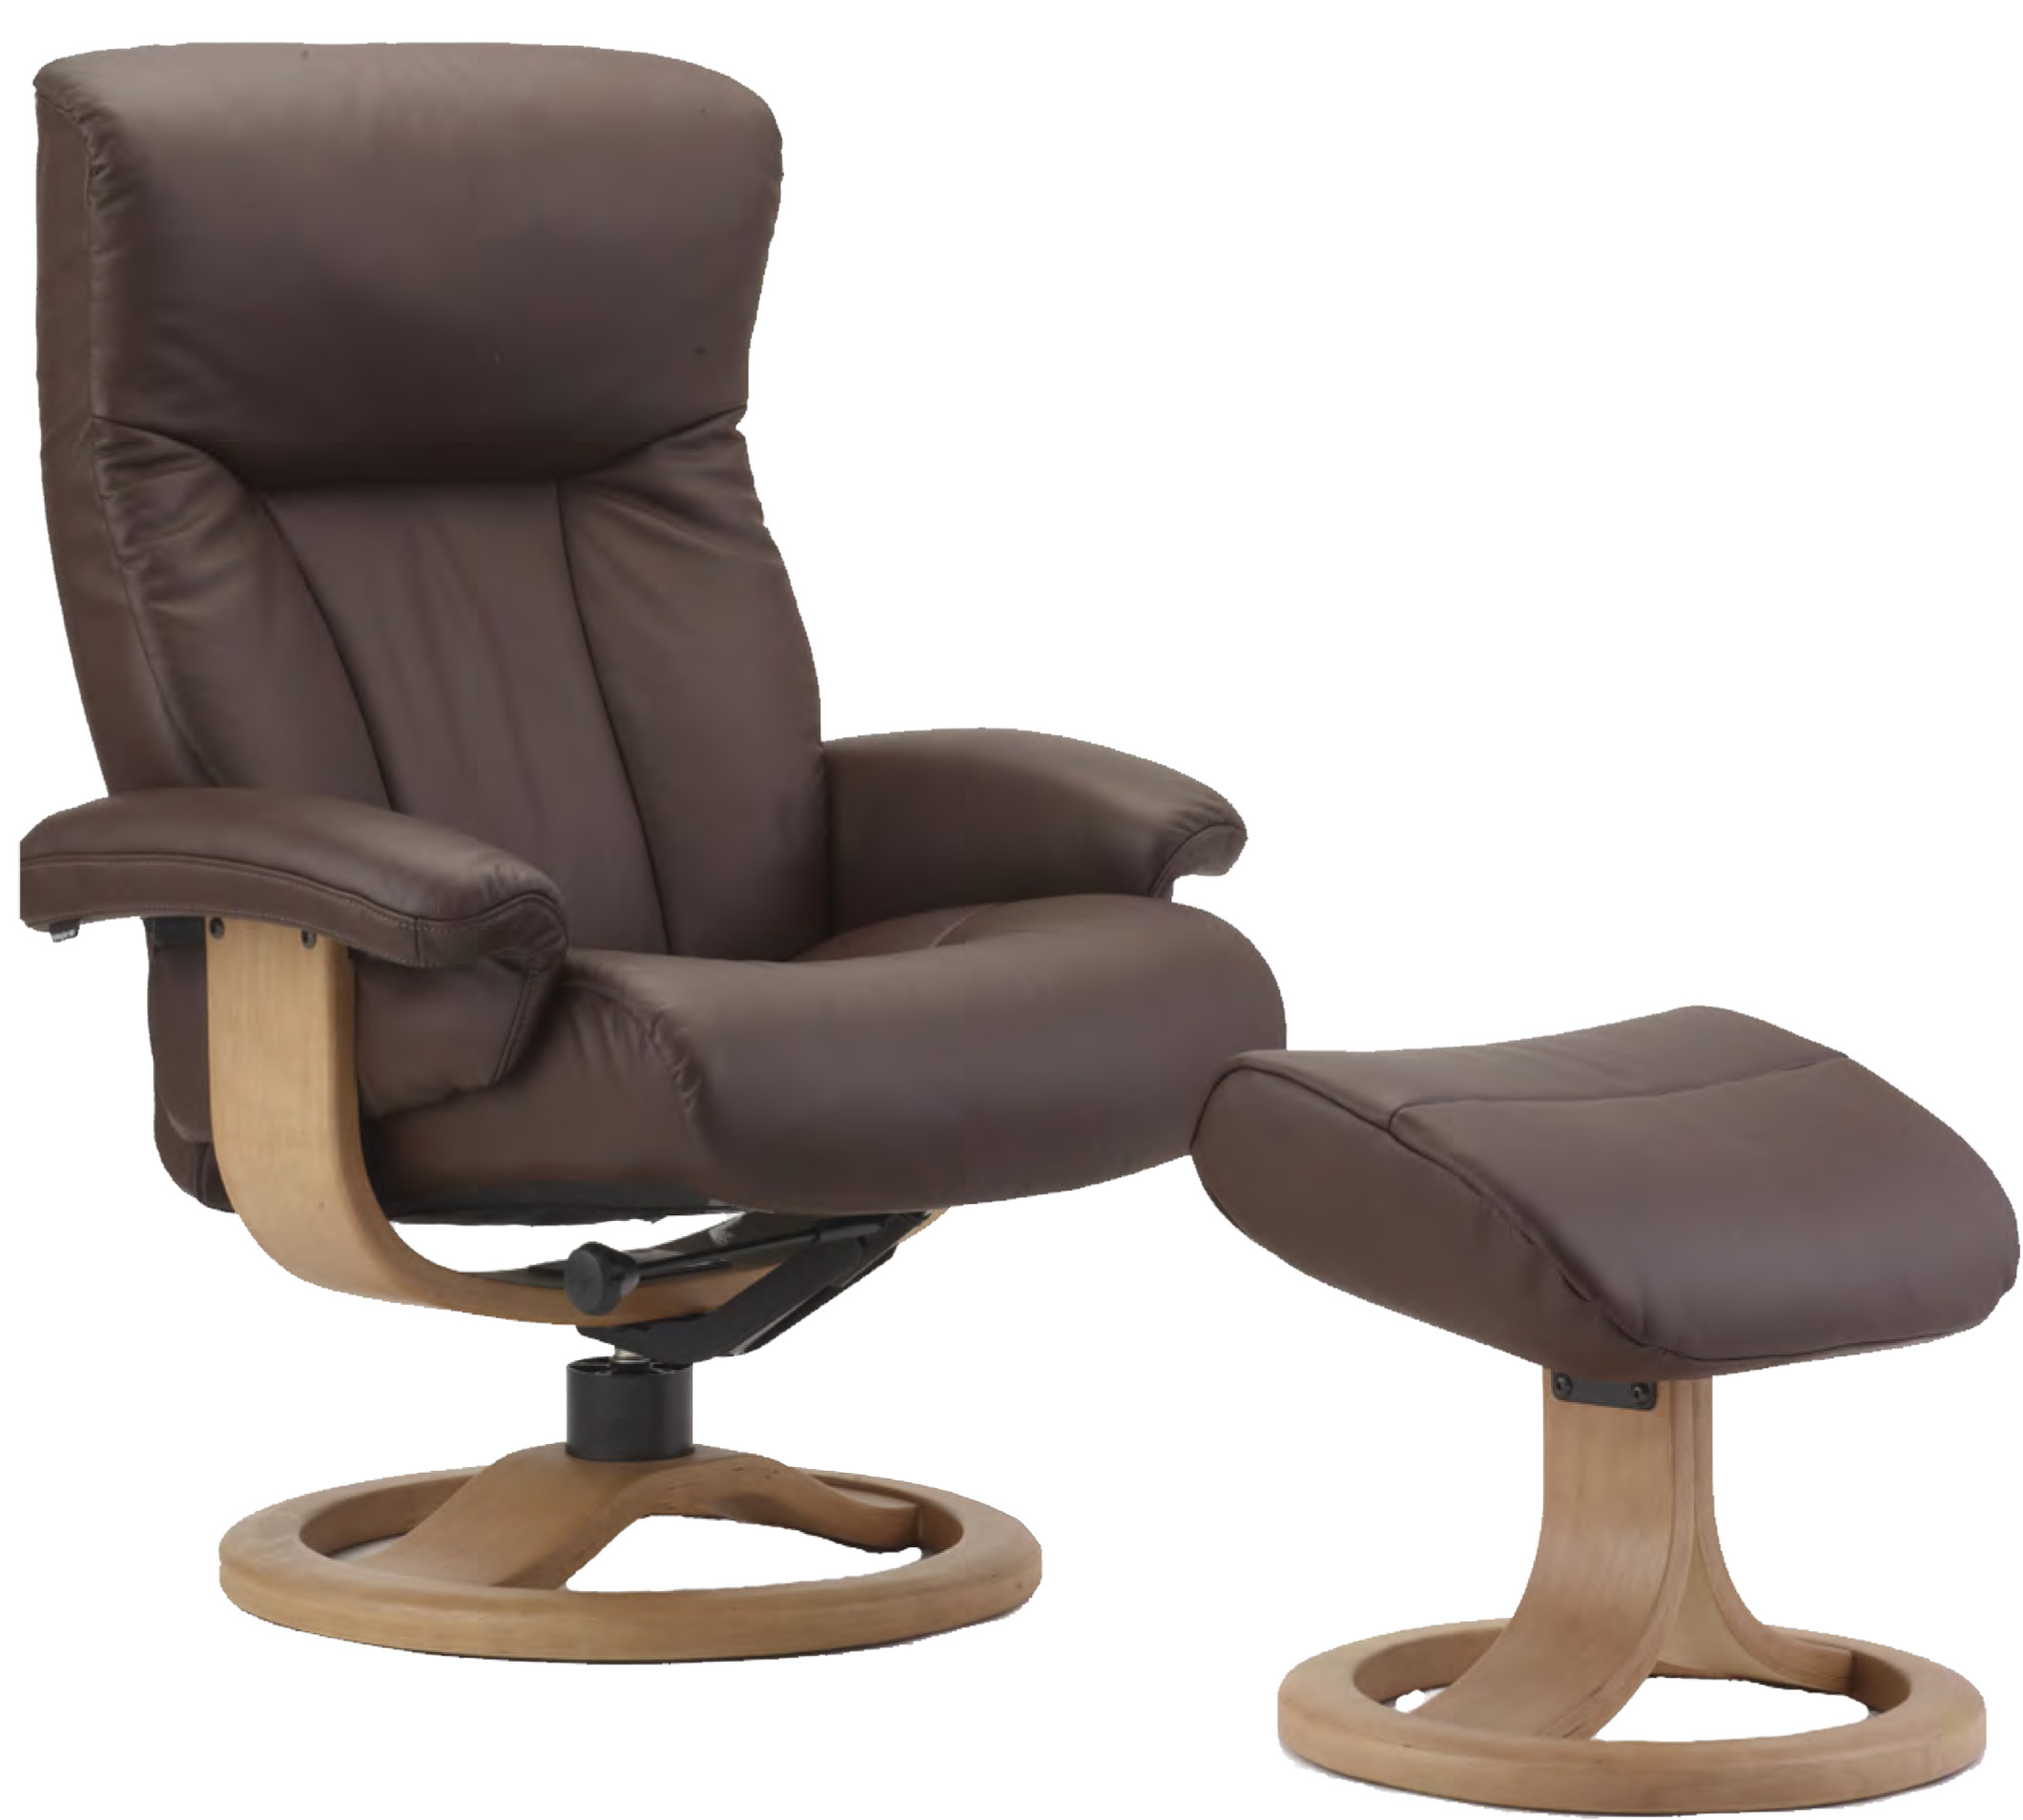 Fjords Scandic Recliner Chair R